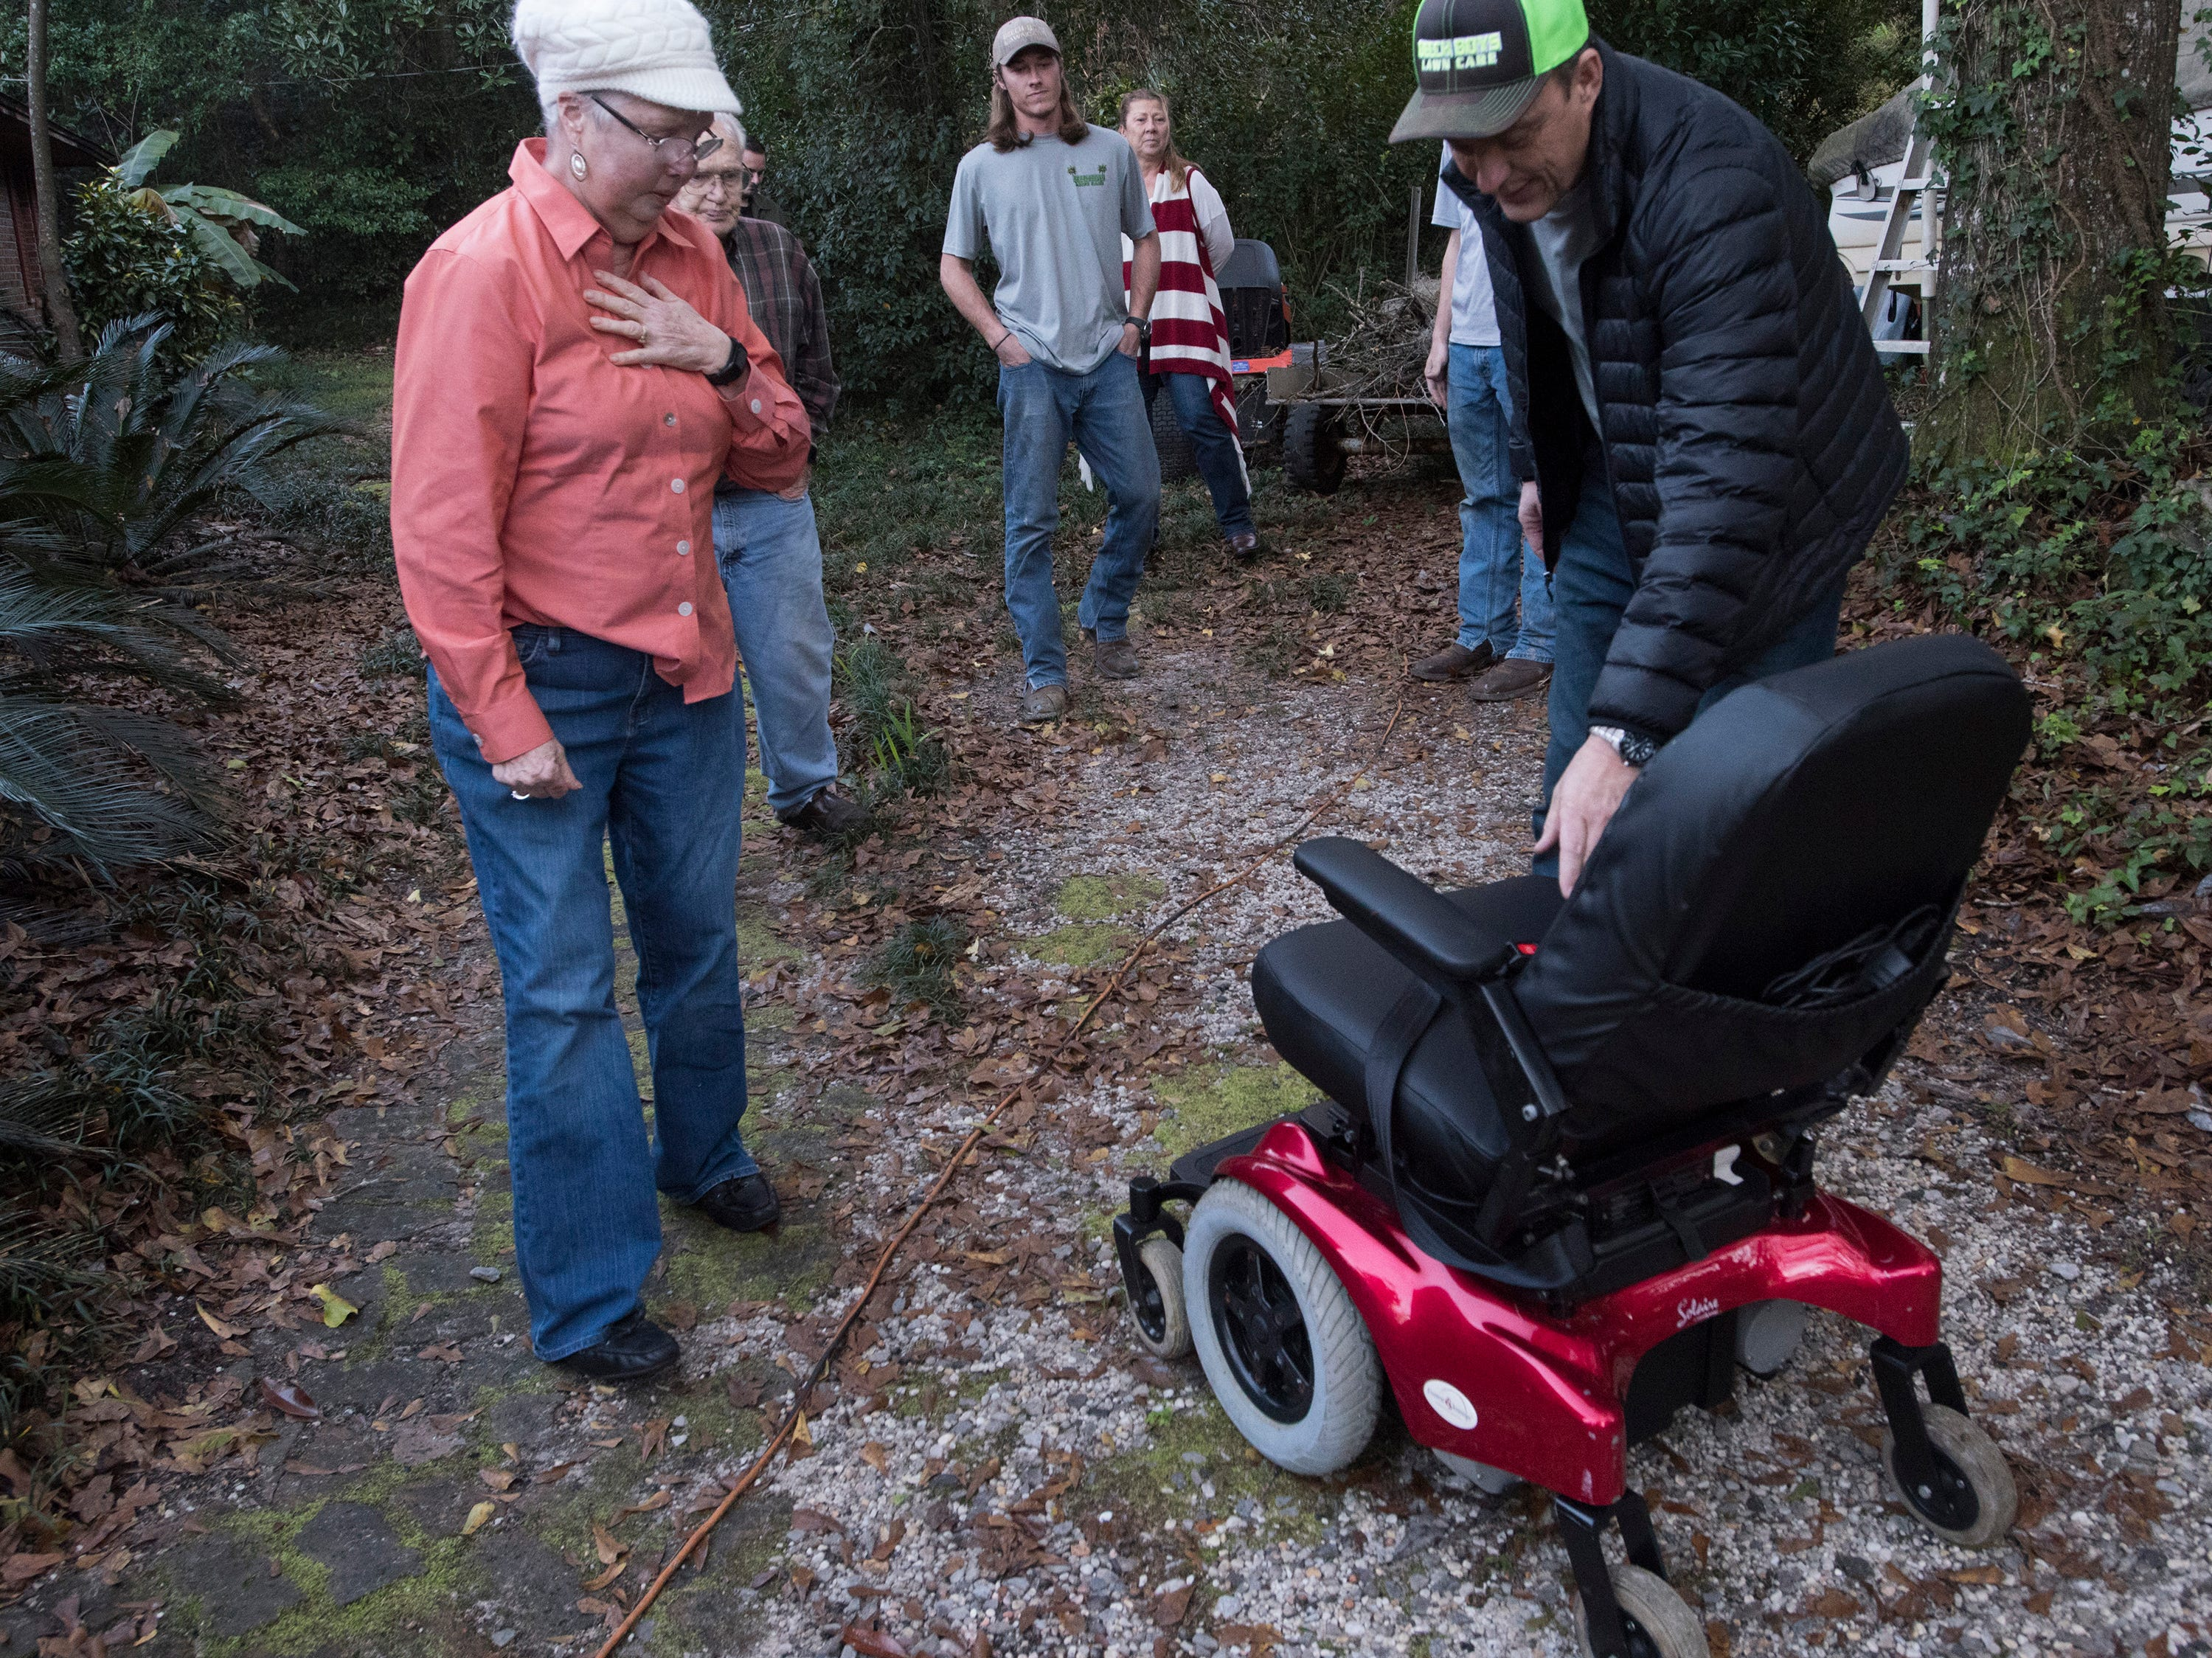 Rick Beech, the owner of Beech Boys Lawn Care, presents East Milton residents, Phyllis, and Jim Blazier, with a refurbished motorized chair on Friday, Jan. 4, 2019